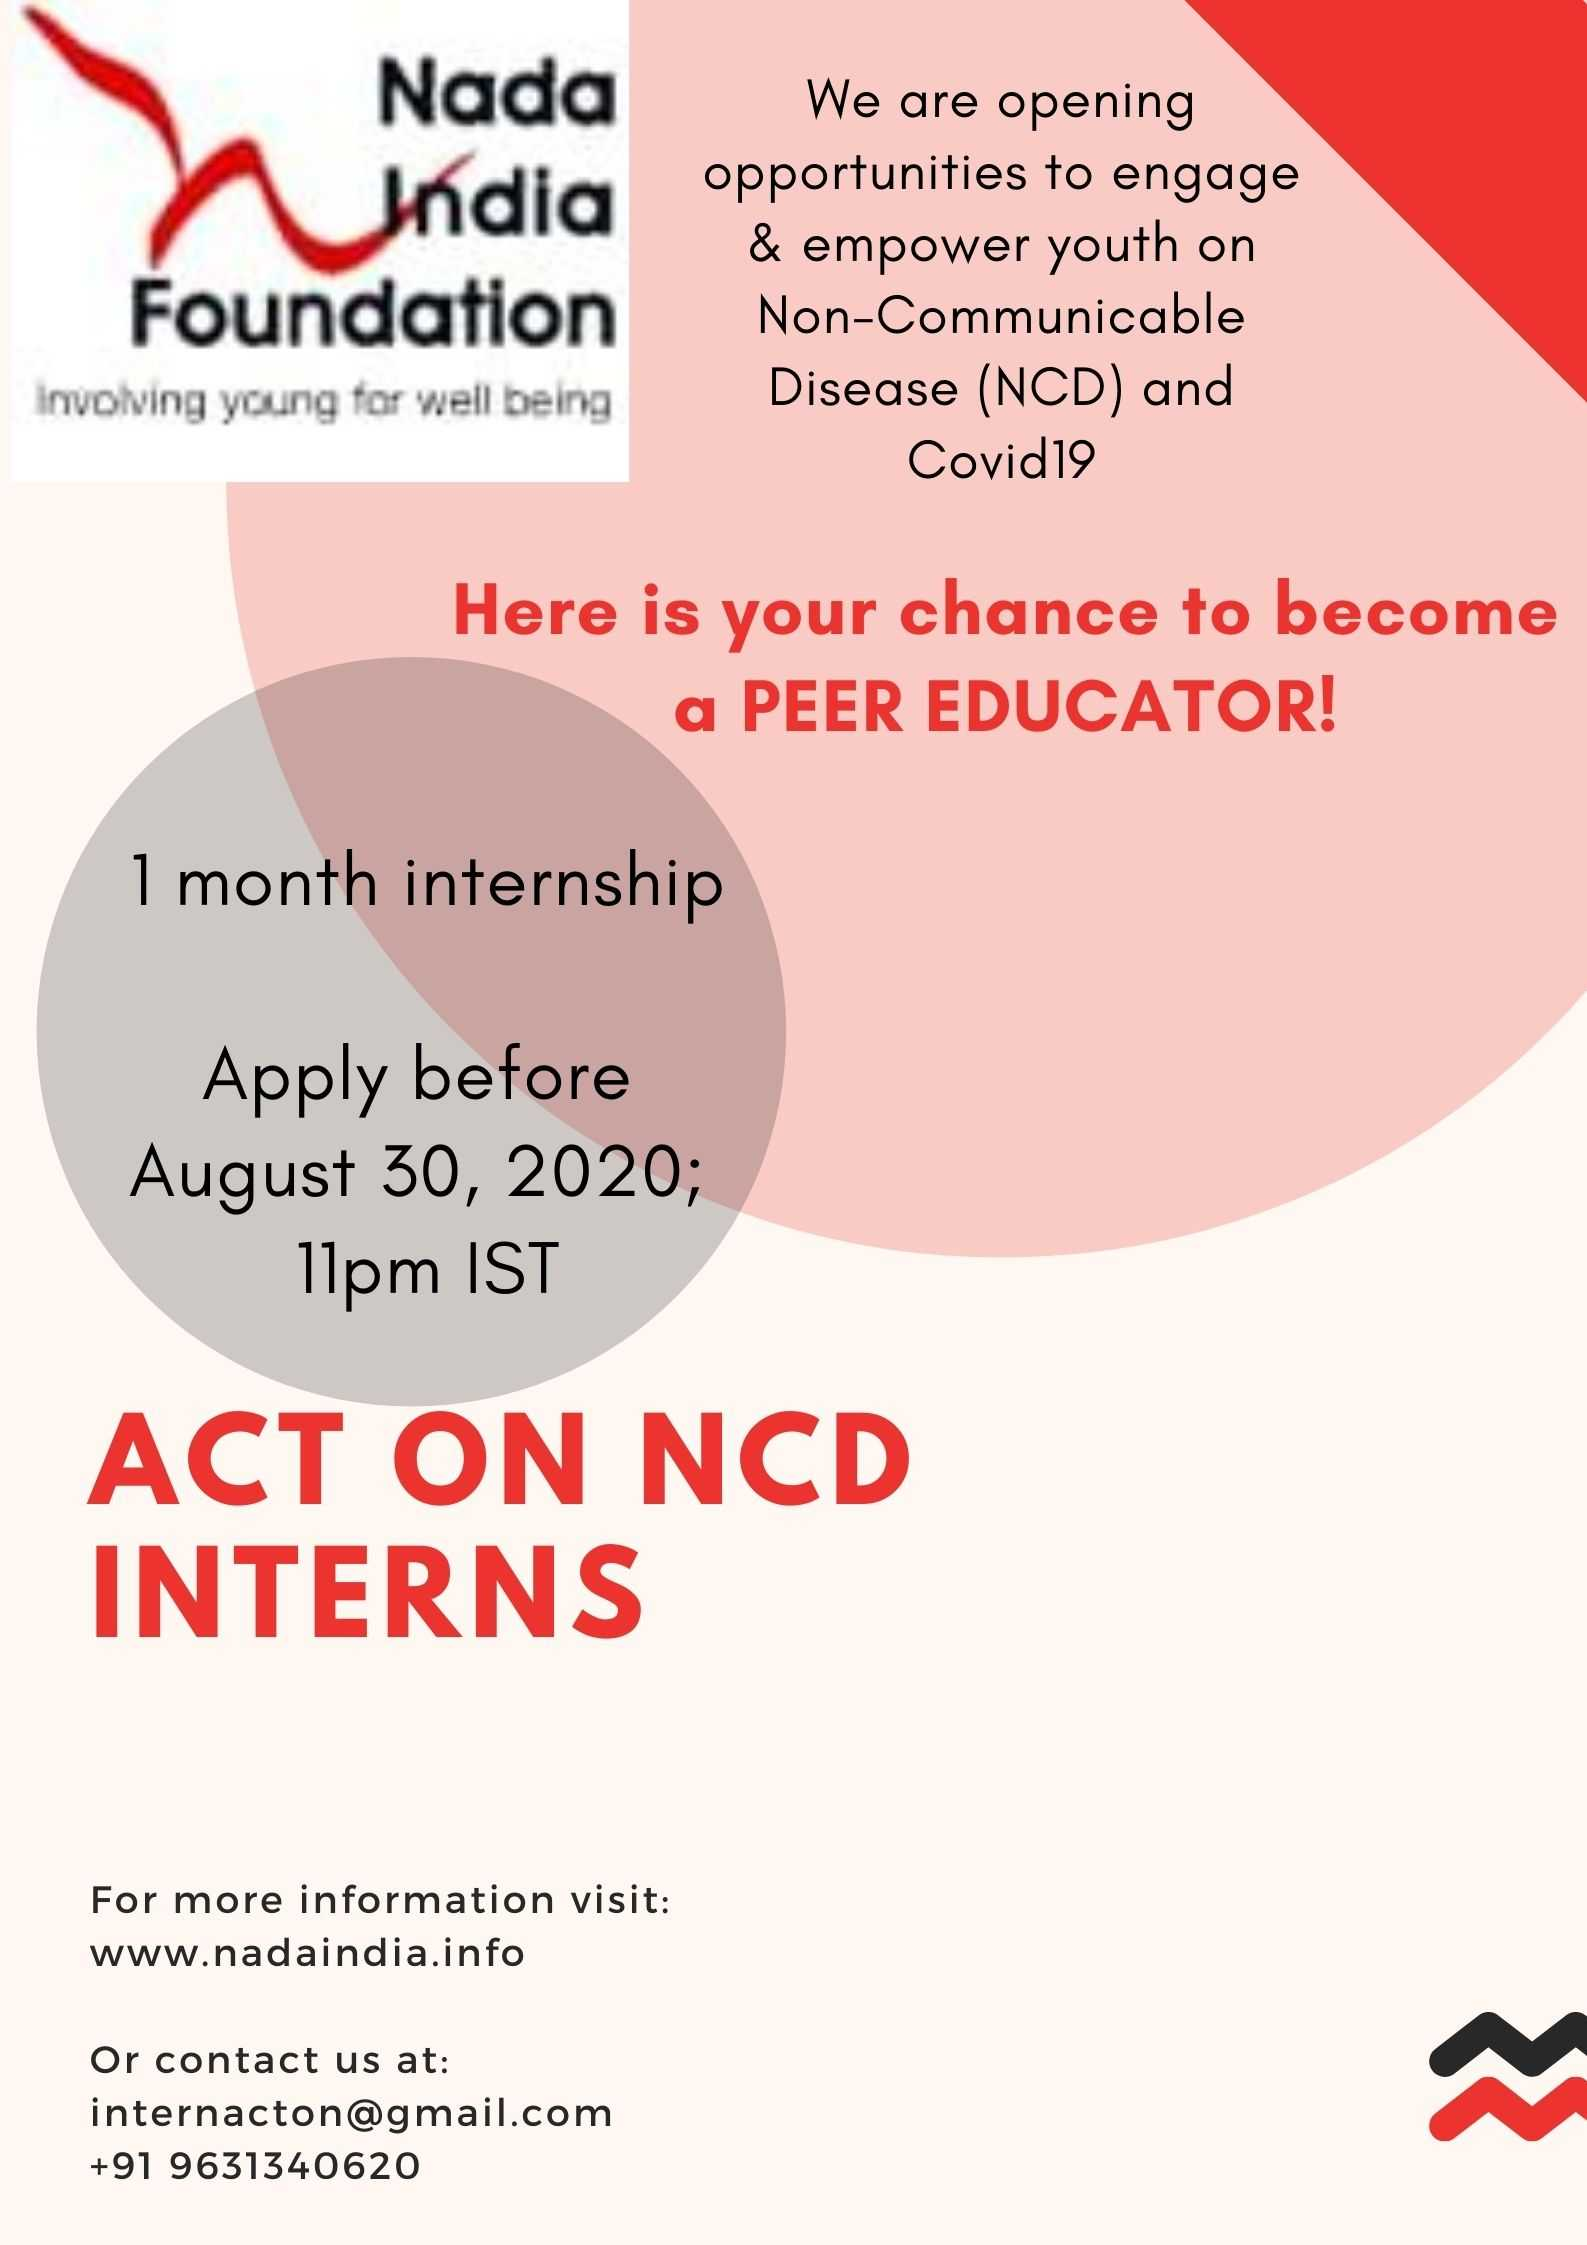 Are you a passionate youth who is driven to contribute and serve your society? Are you concerned about the health and well-being of your friends and family? Or do you simply want to know more about 'The socio-economically transmitted disease' which is a major 21st Century health concern ?? An interesting INTERNSHIP OPPORTUNITY with Nada India Foundation is awaiting you!  APPLY BEFORE: 30th August 2020, 11 pm IST.